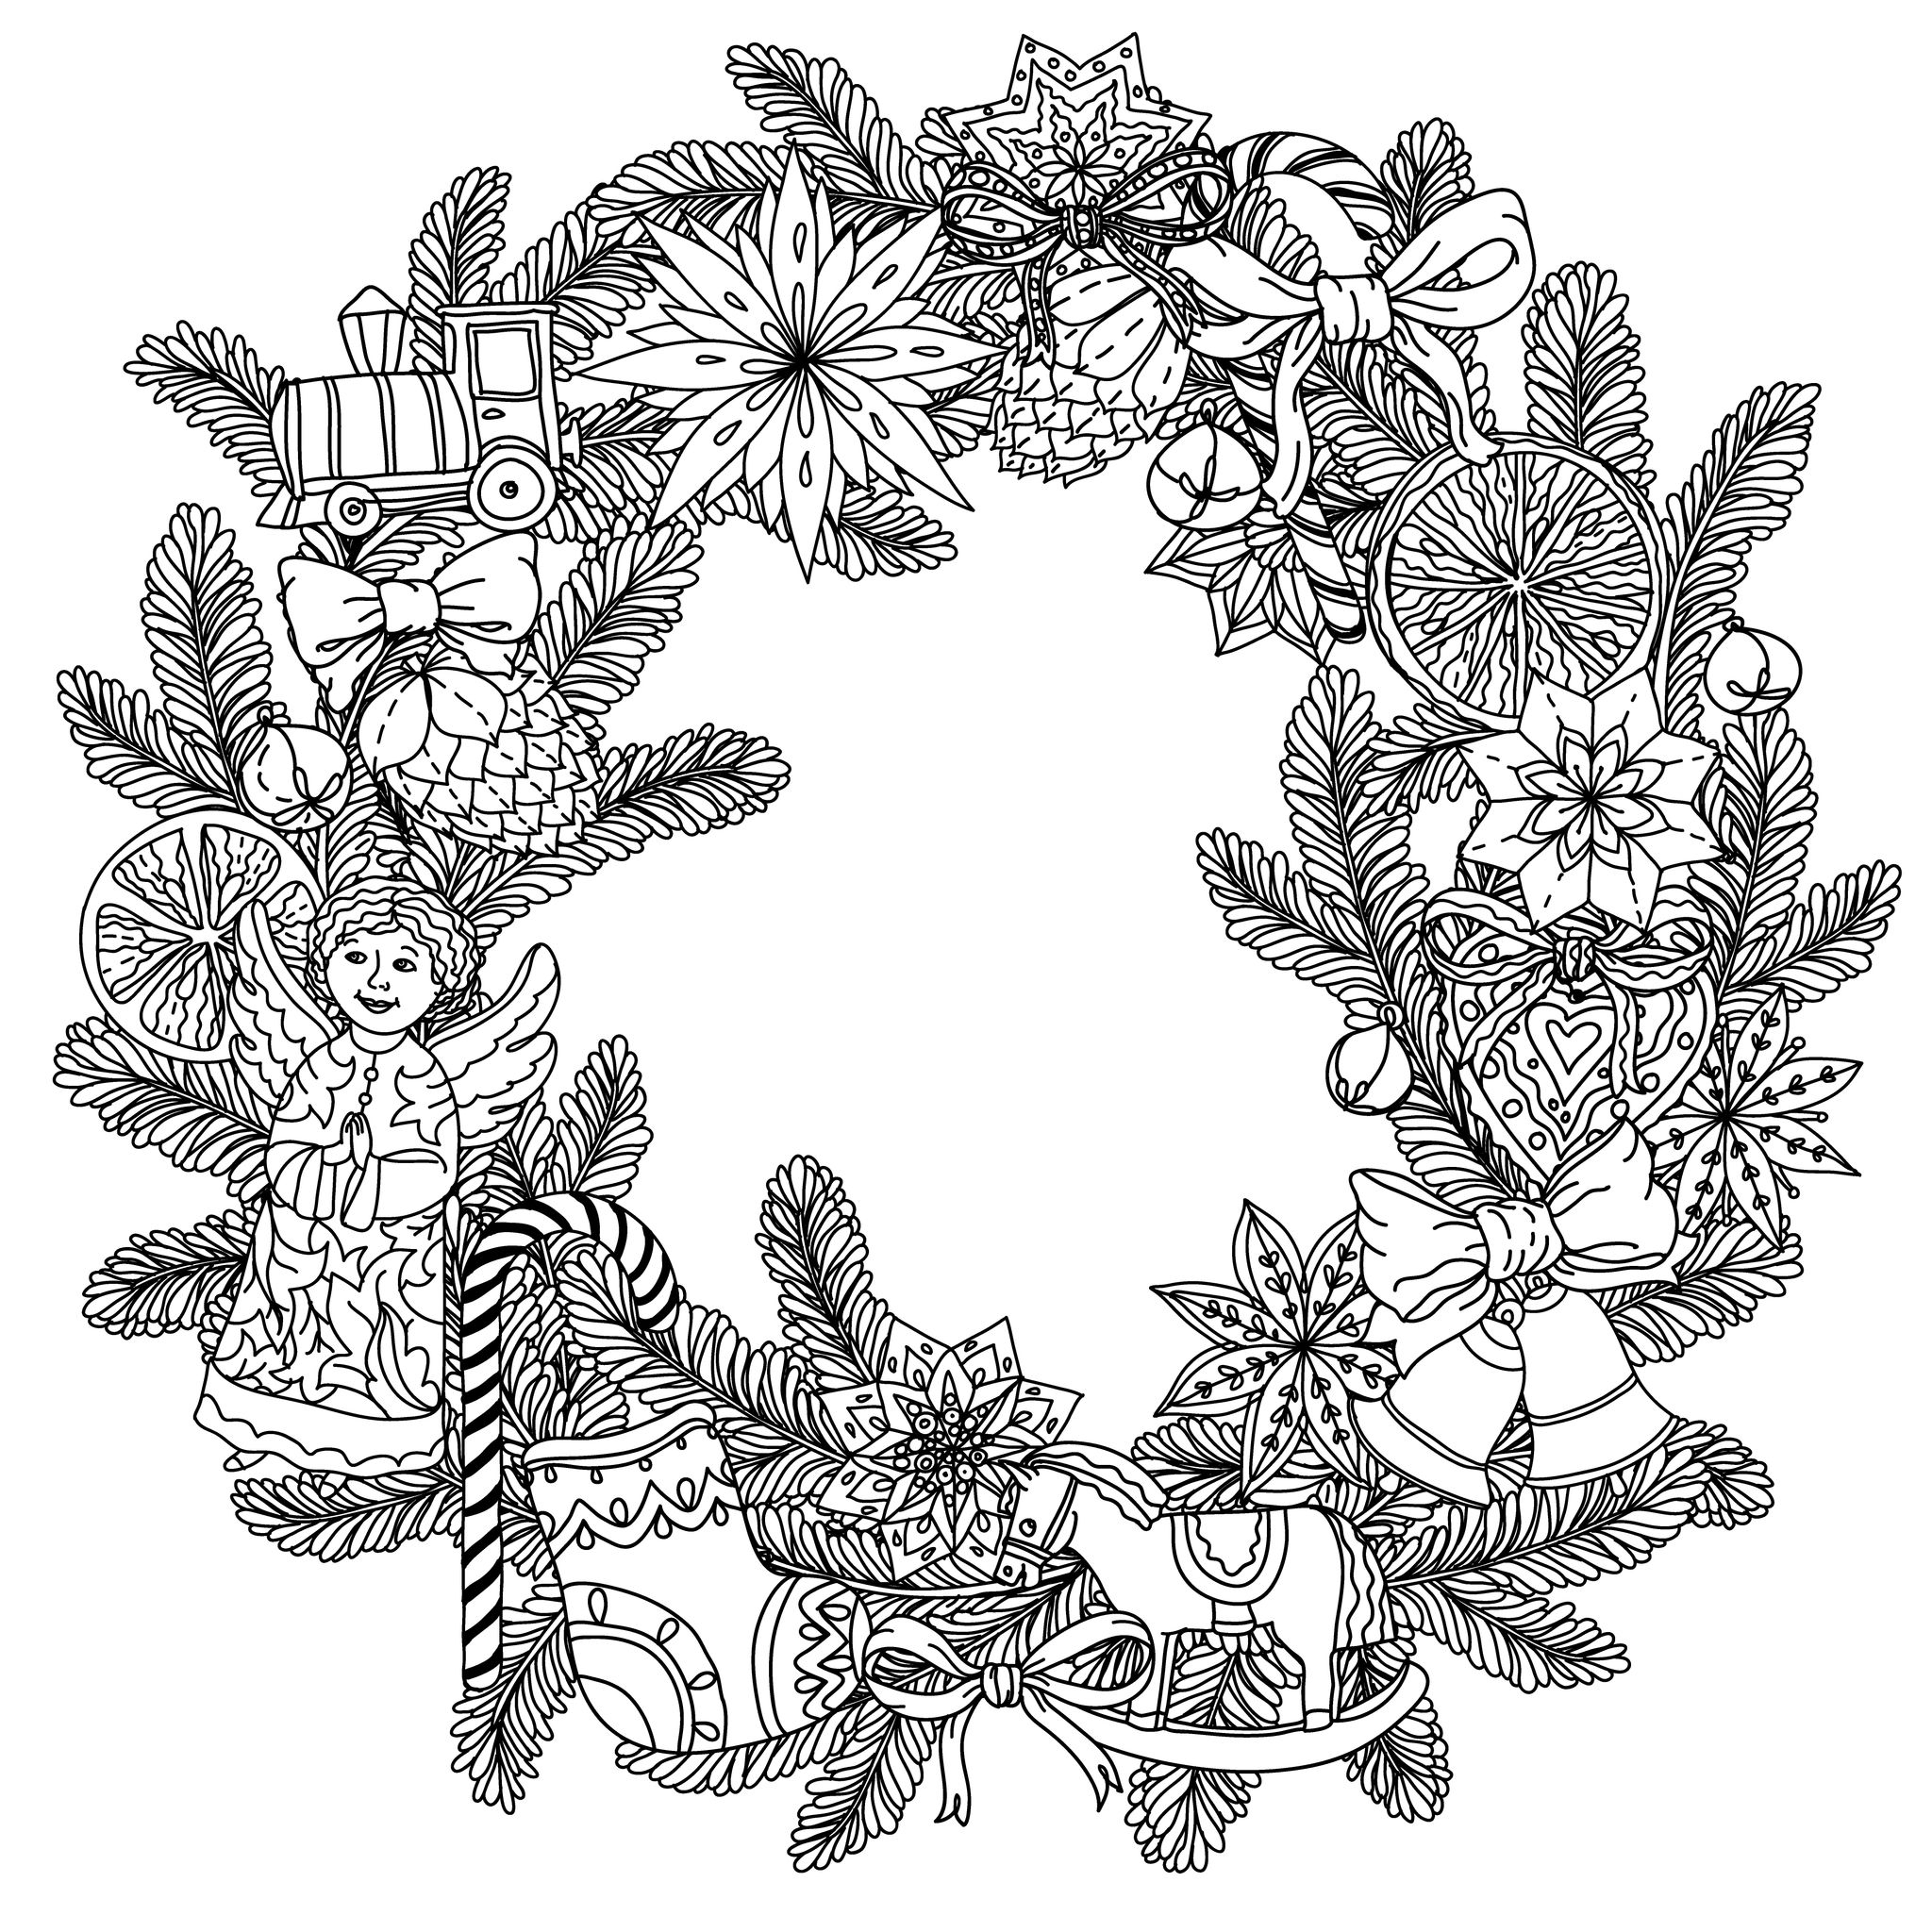 Xmas Wreaths Coloring Pages With Christmas Adult To Print Free Books